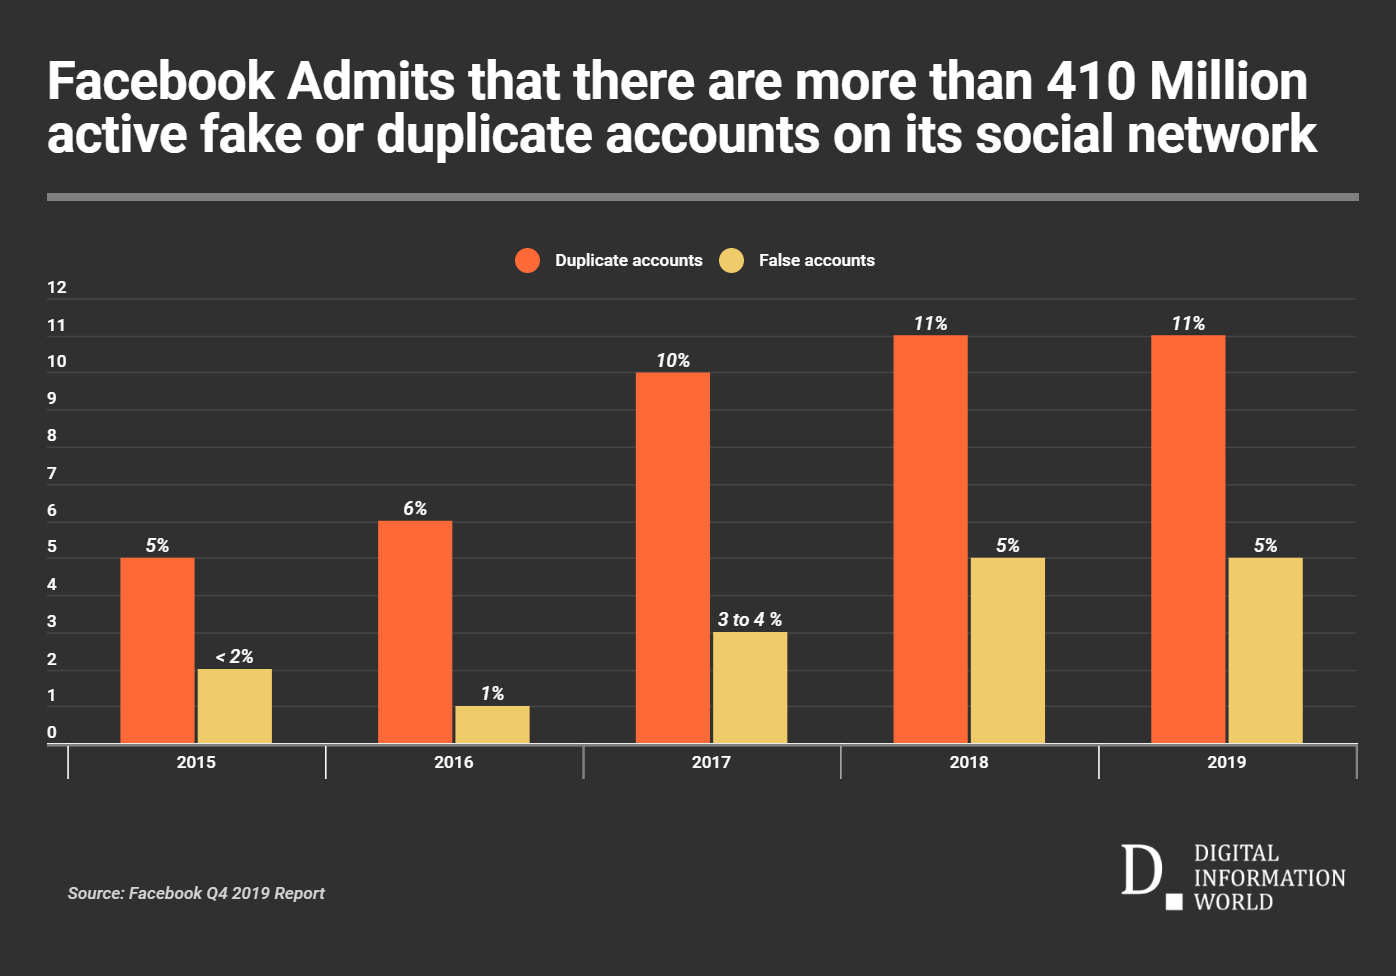 16 Percent of All Active Facebook Accounts Are Fake or Duplicates